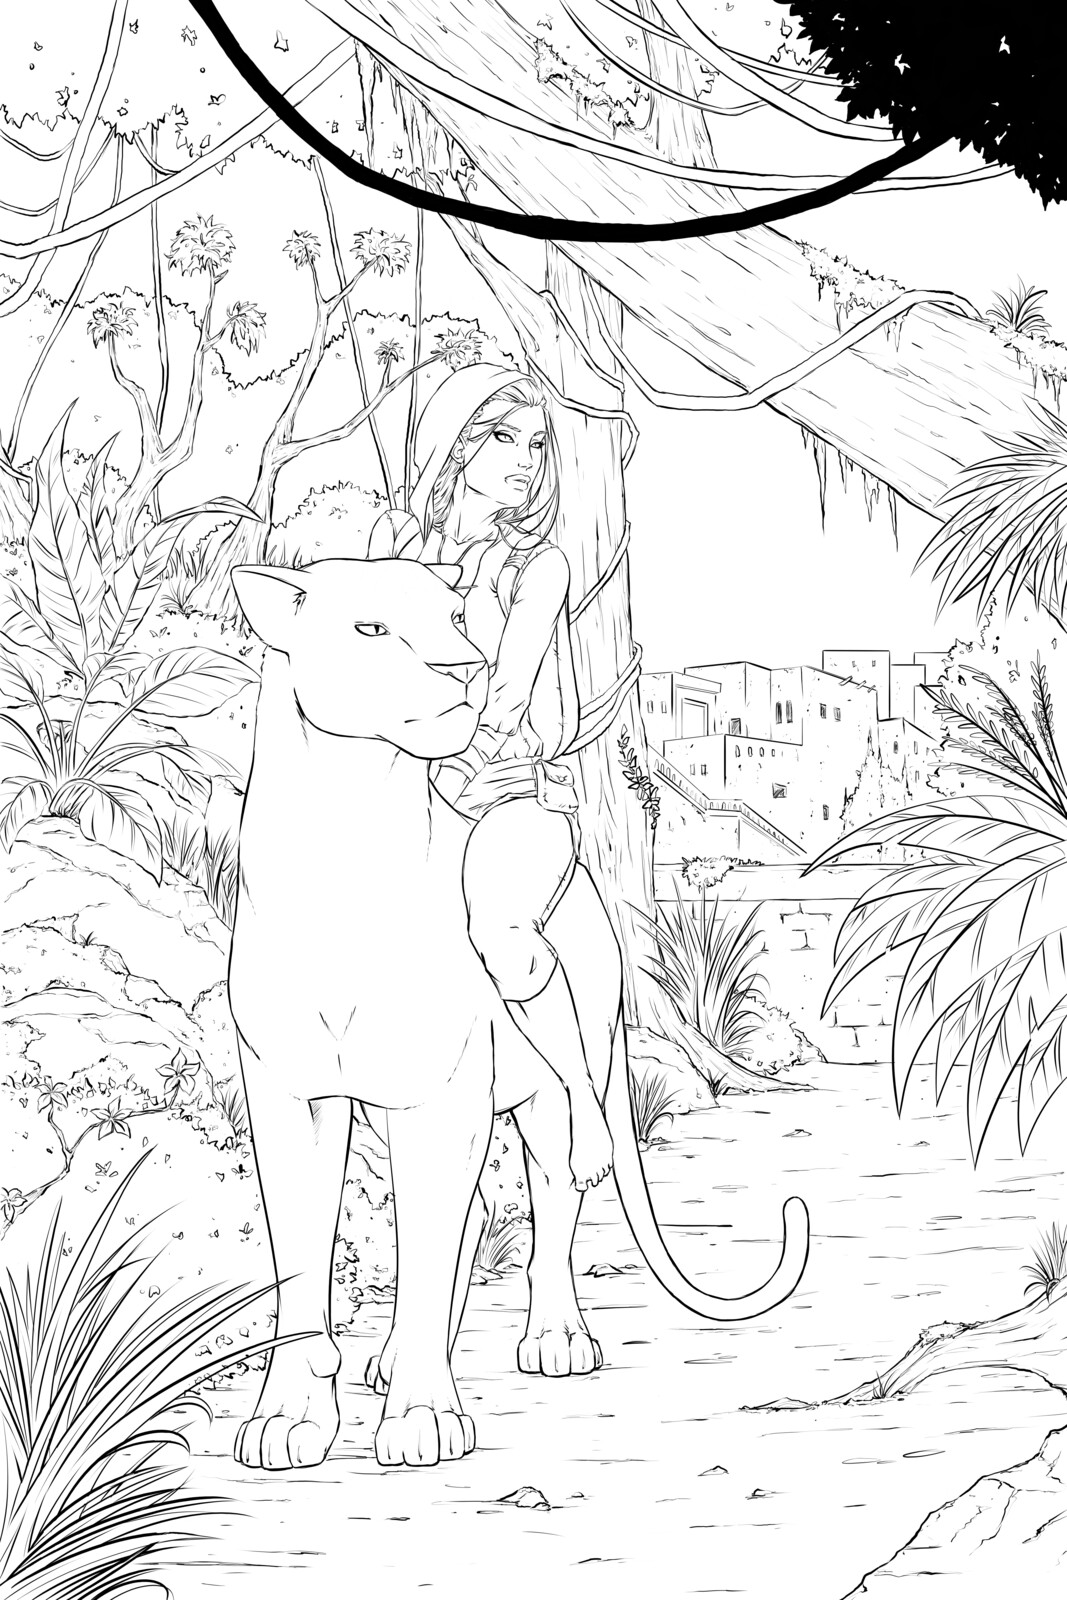 Issue 3 cover - Line art